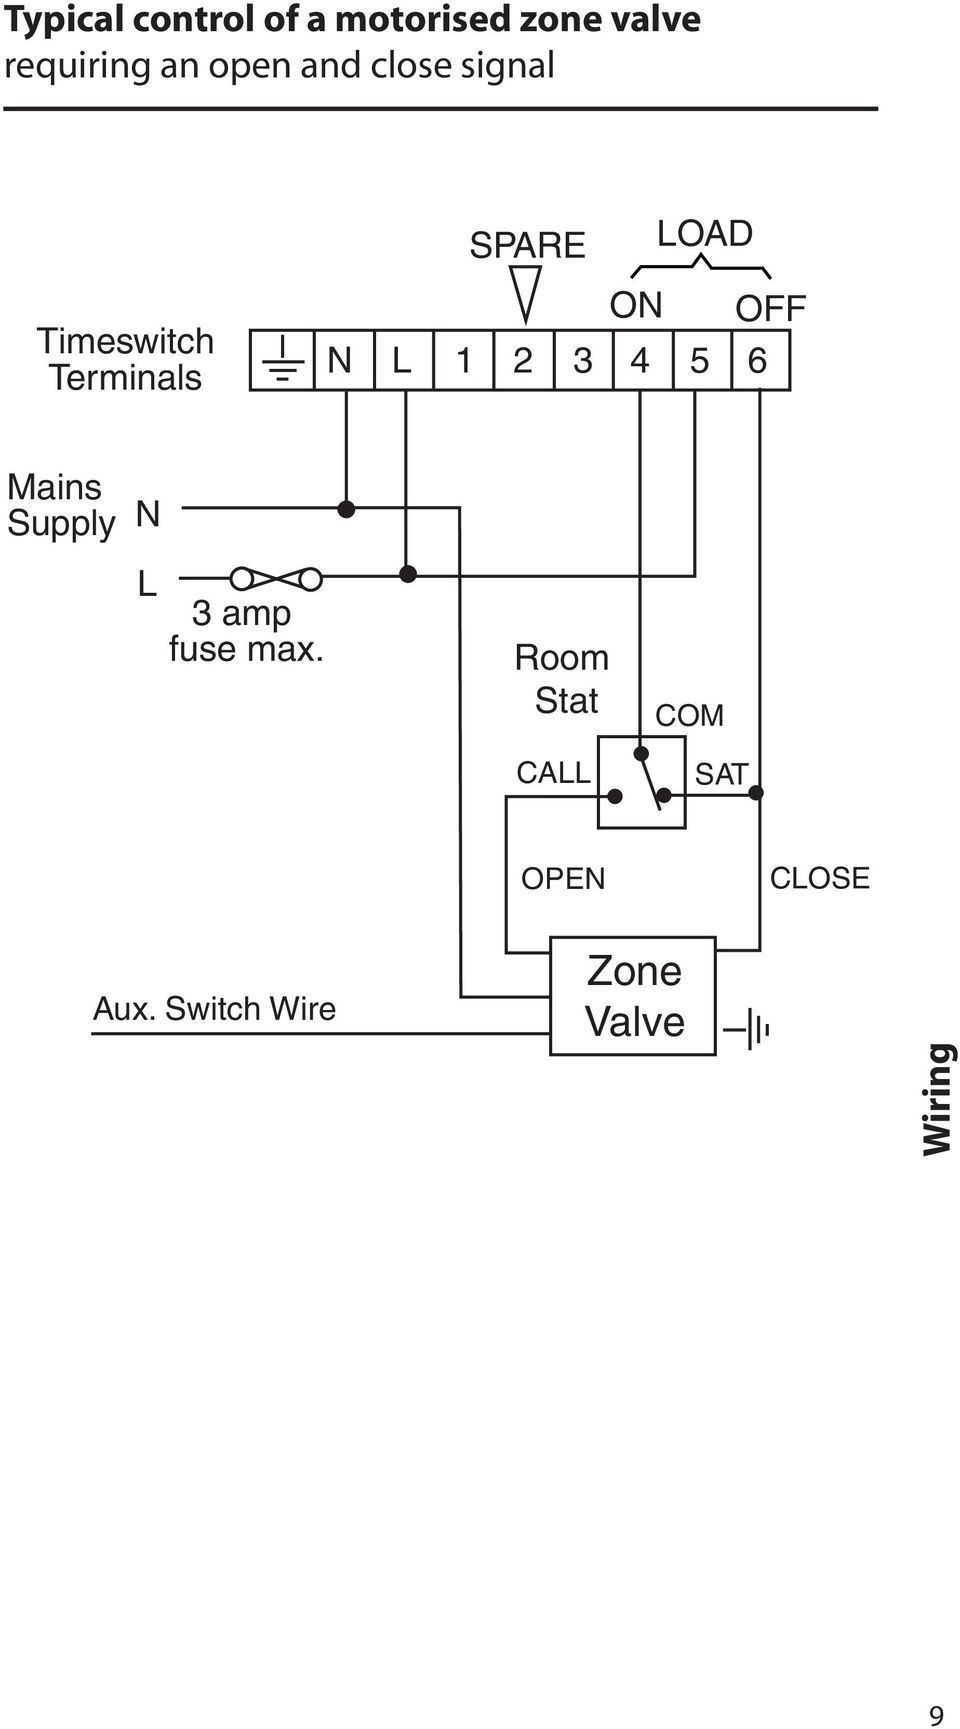 Set1e Installation User Instructions Electronic Timeswitch For Open Close Switch Wiring Diagram Off N L 1 2 3 4 5 6 Mains Supply Amp Fuse Max